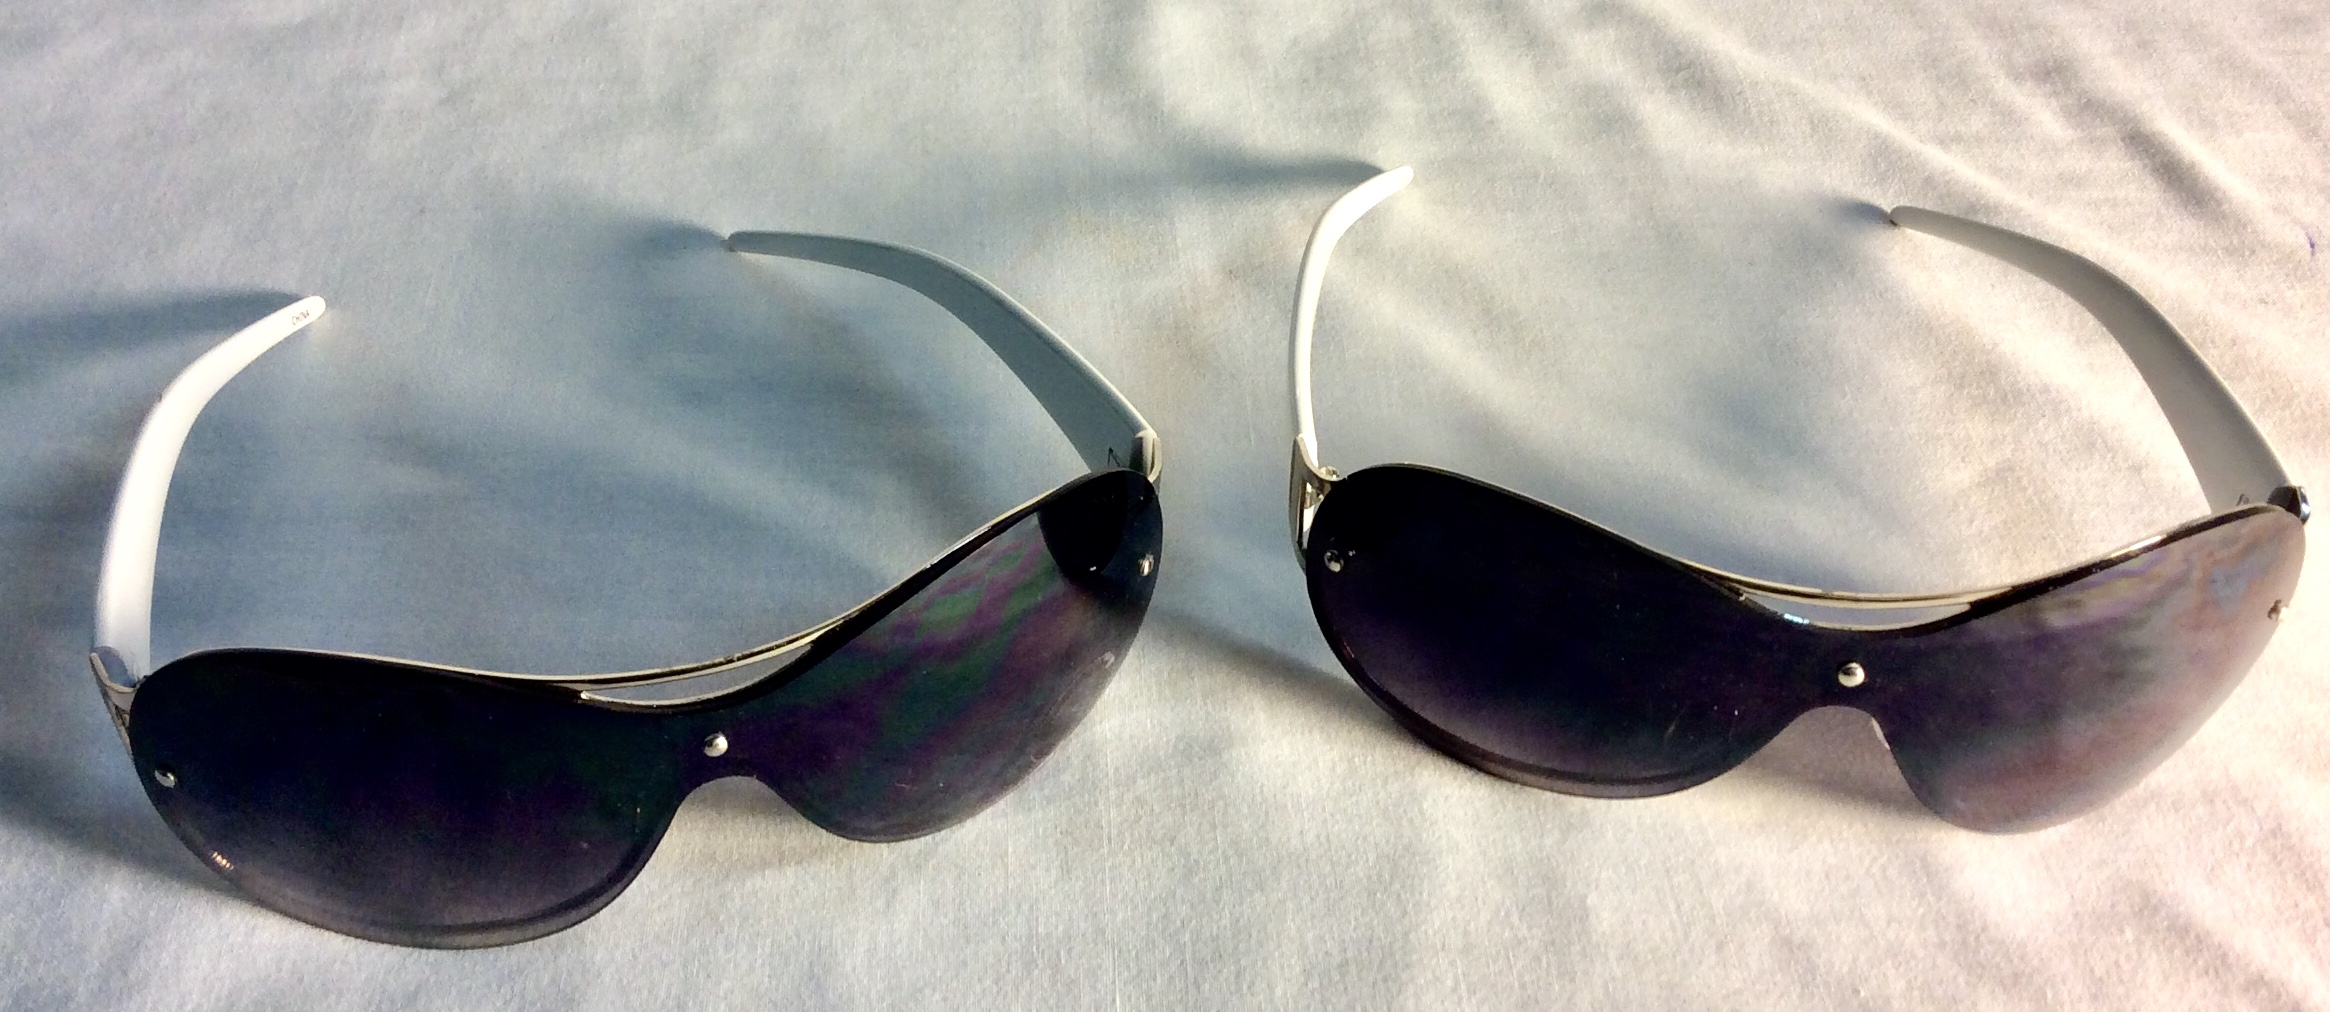 White and silver sunglasses